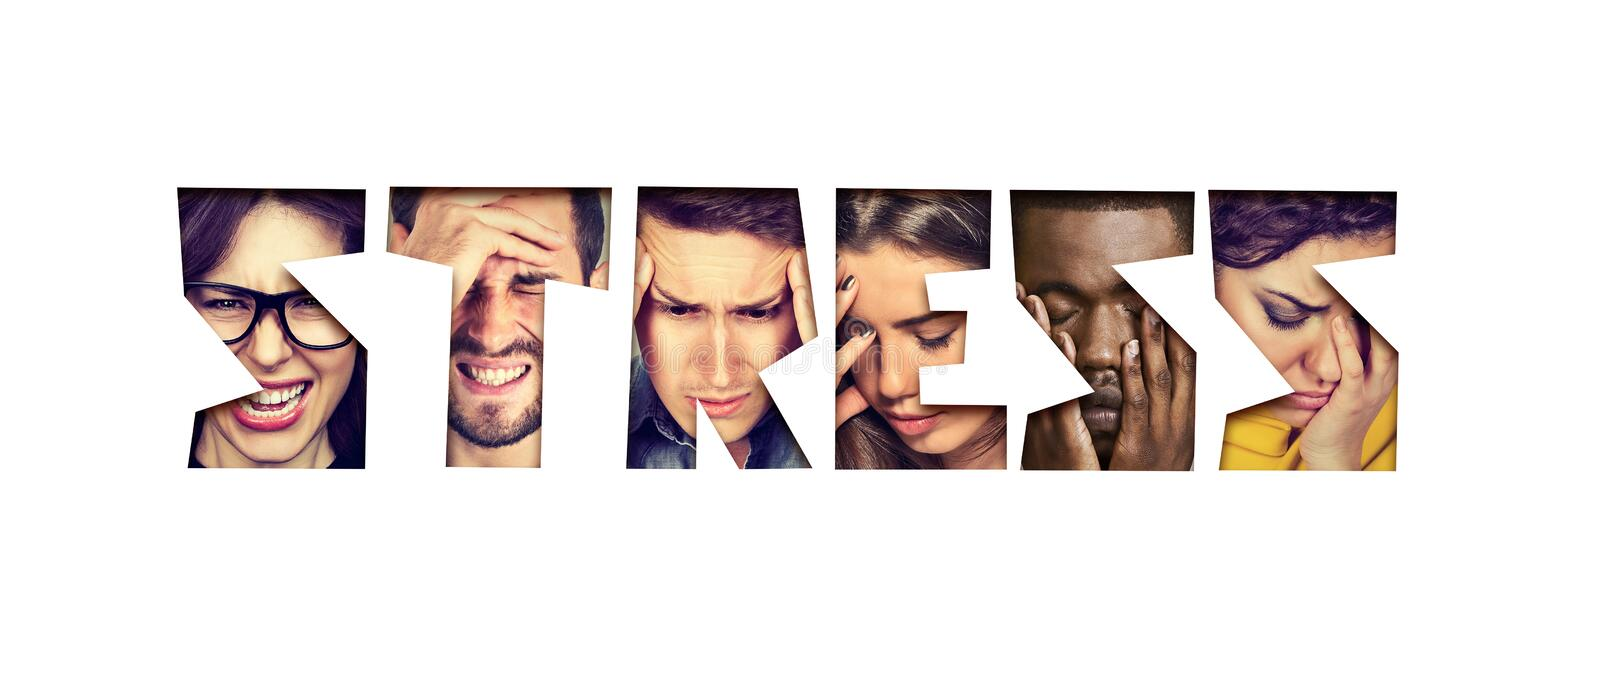 Word stress made of desperate unhappy group of people royalty free stock photos